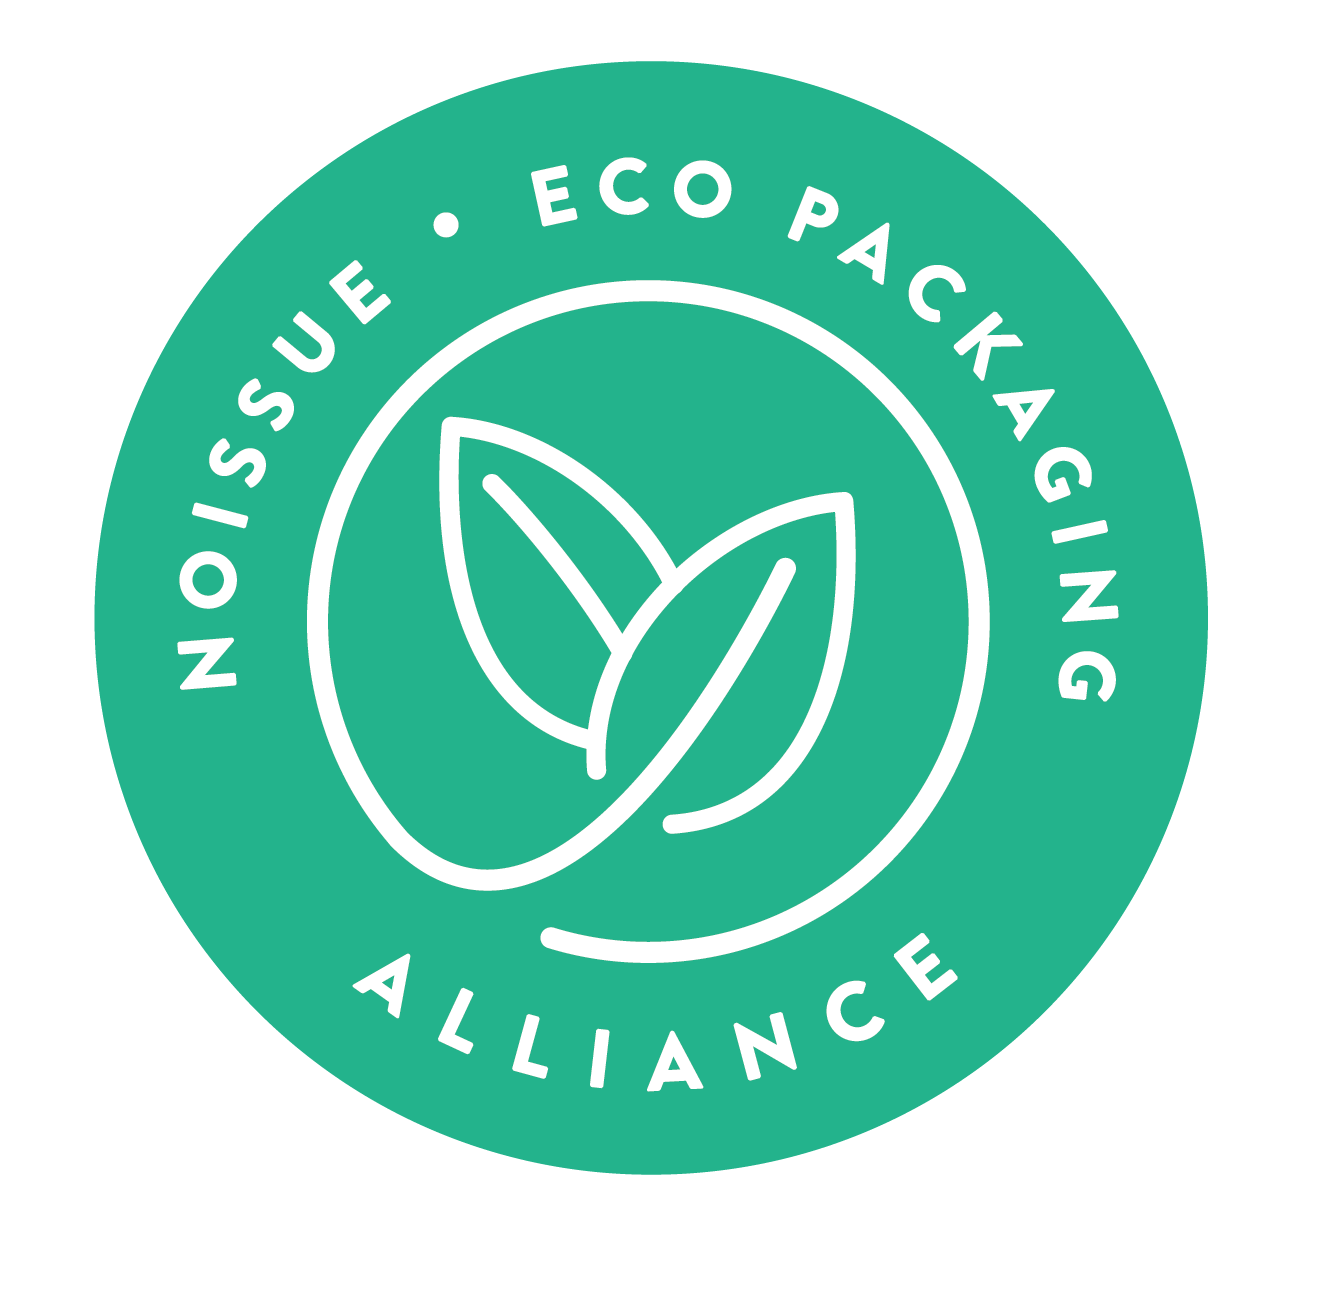 Caroline Jones- Eco alliance badge